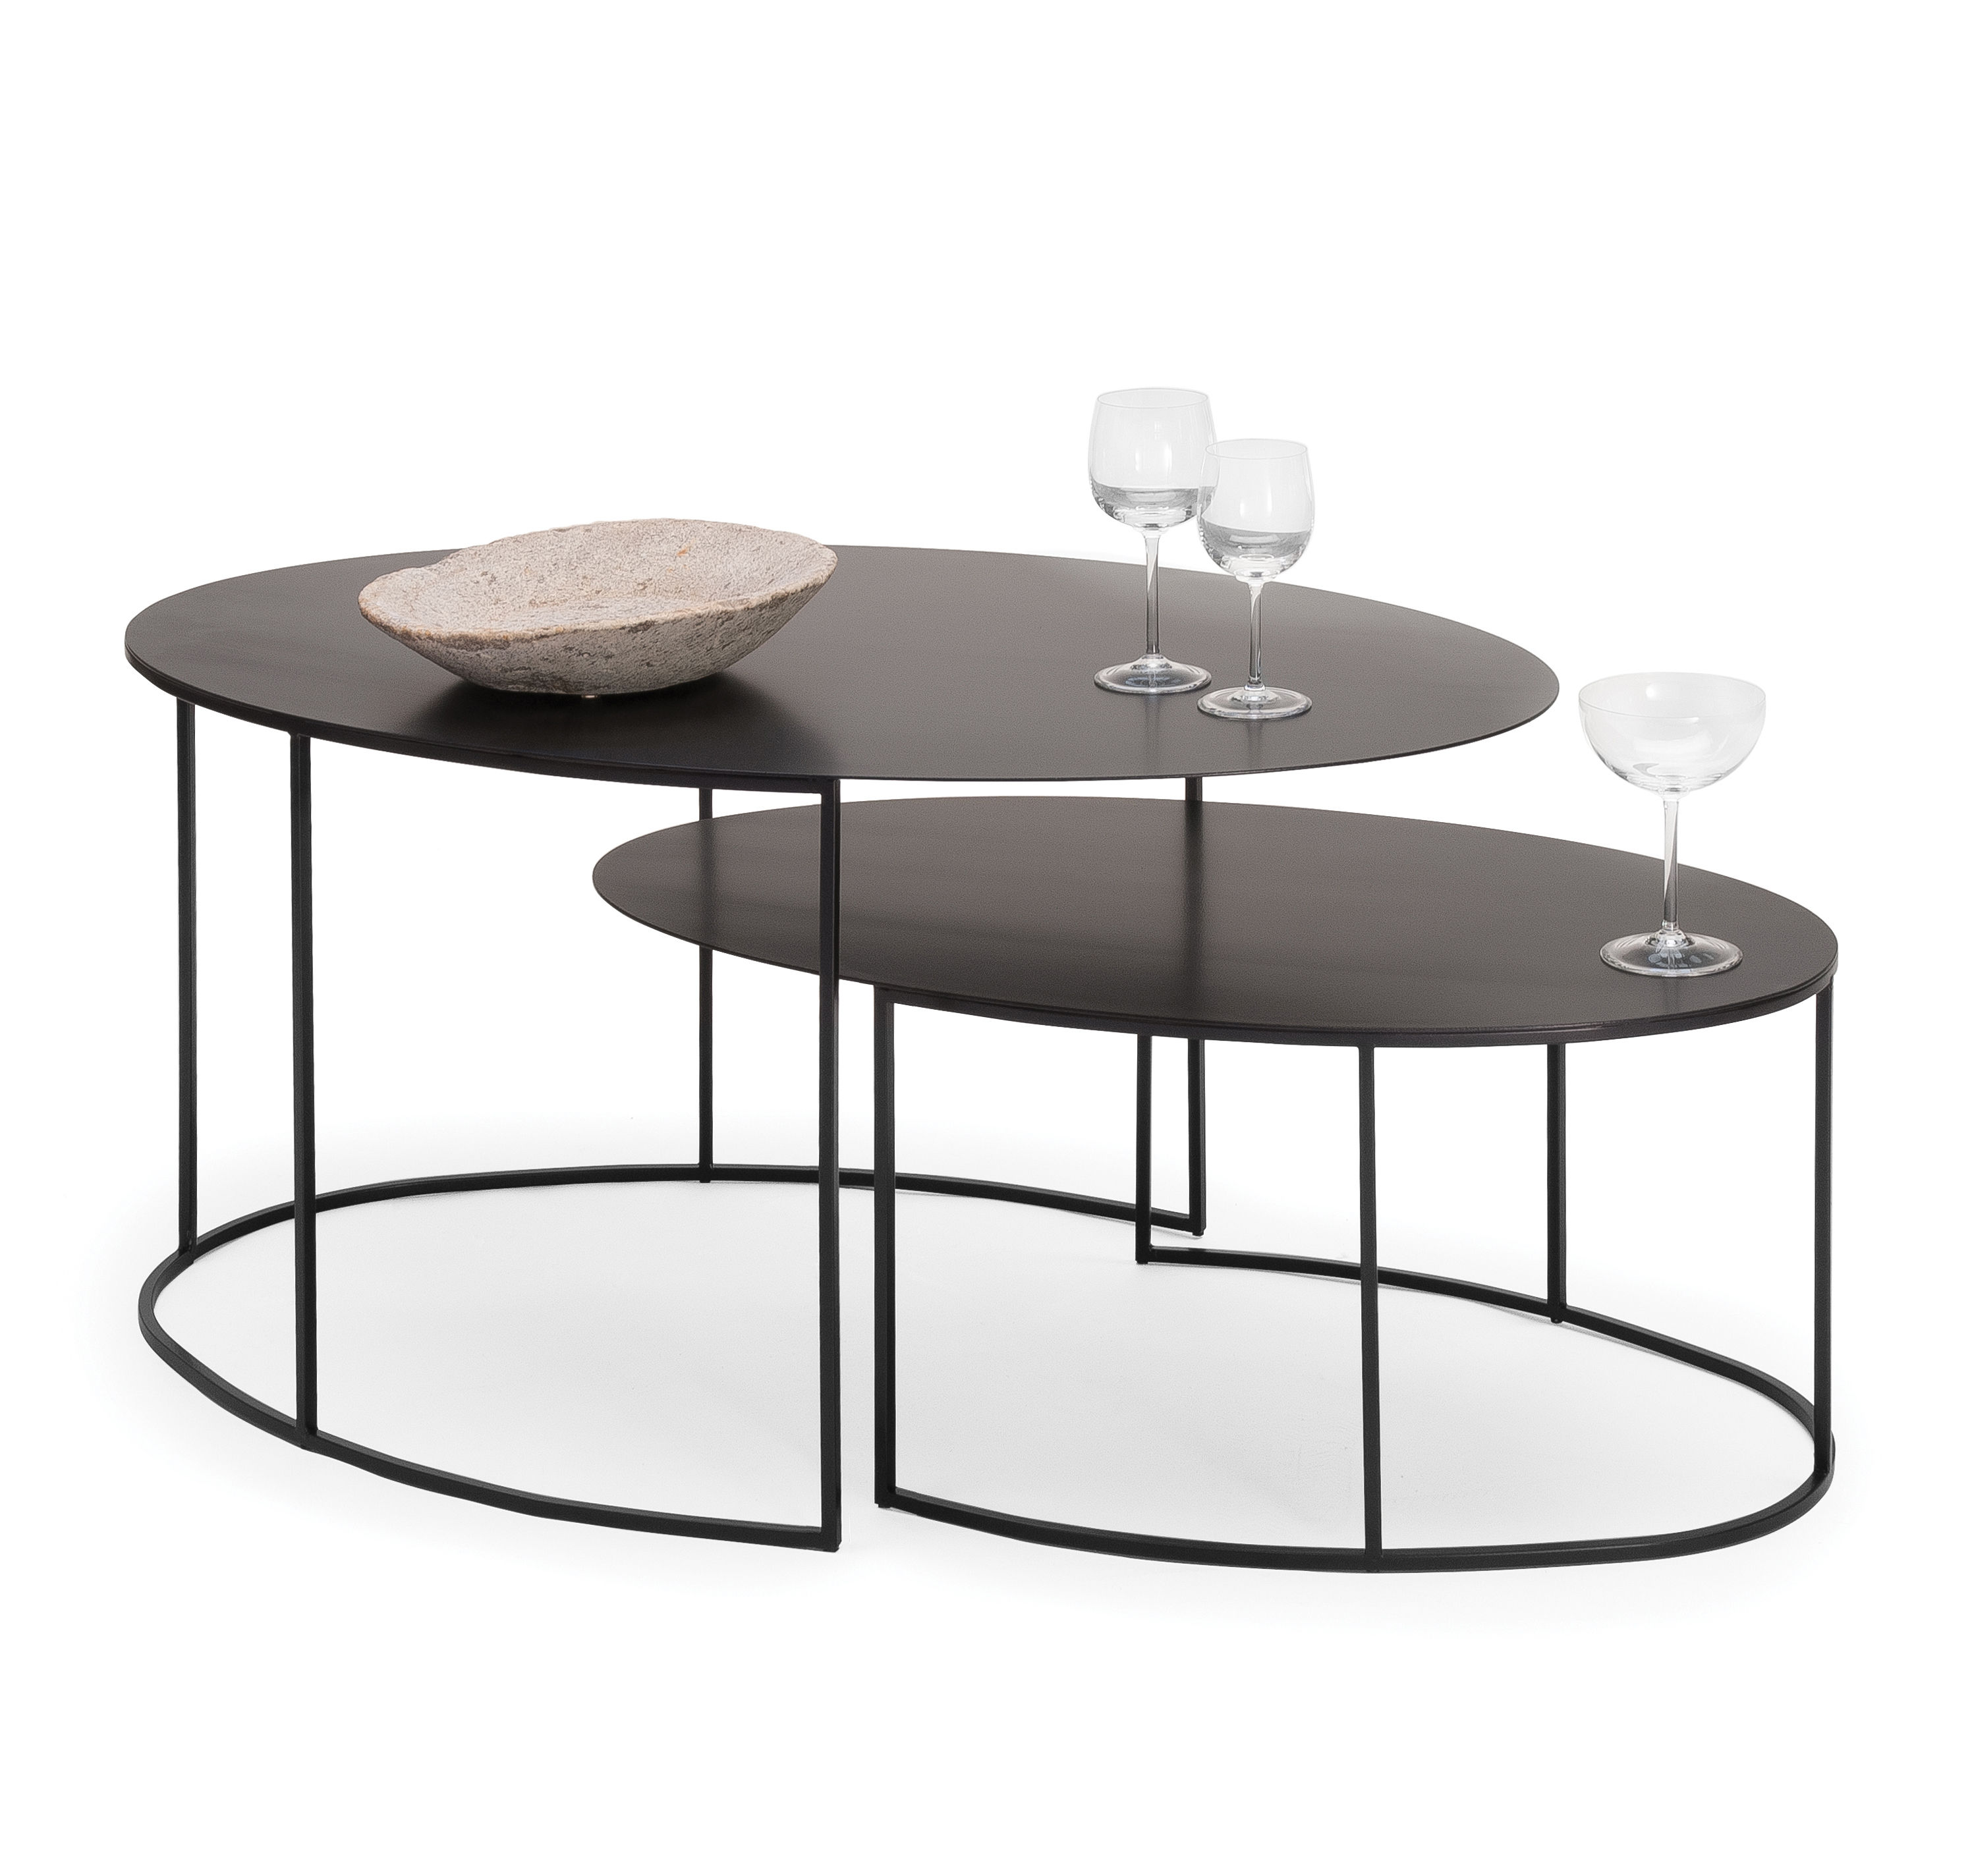 slim irony coffee table oval h 29 cm 72 x 42 black by zeus. Black Bedroom Furniture Sets. Home Design Ideas